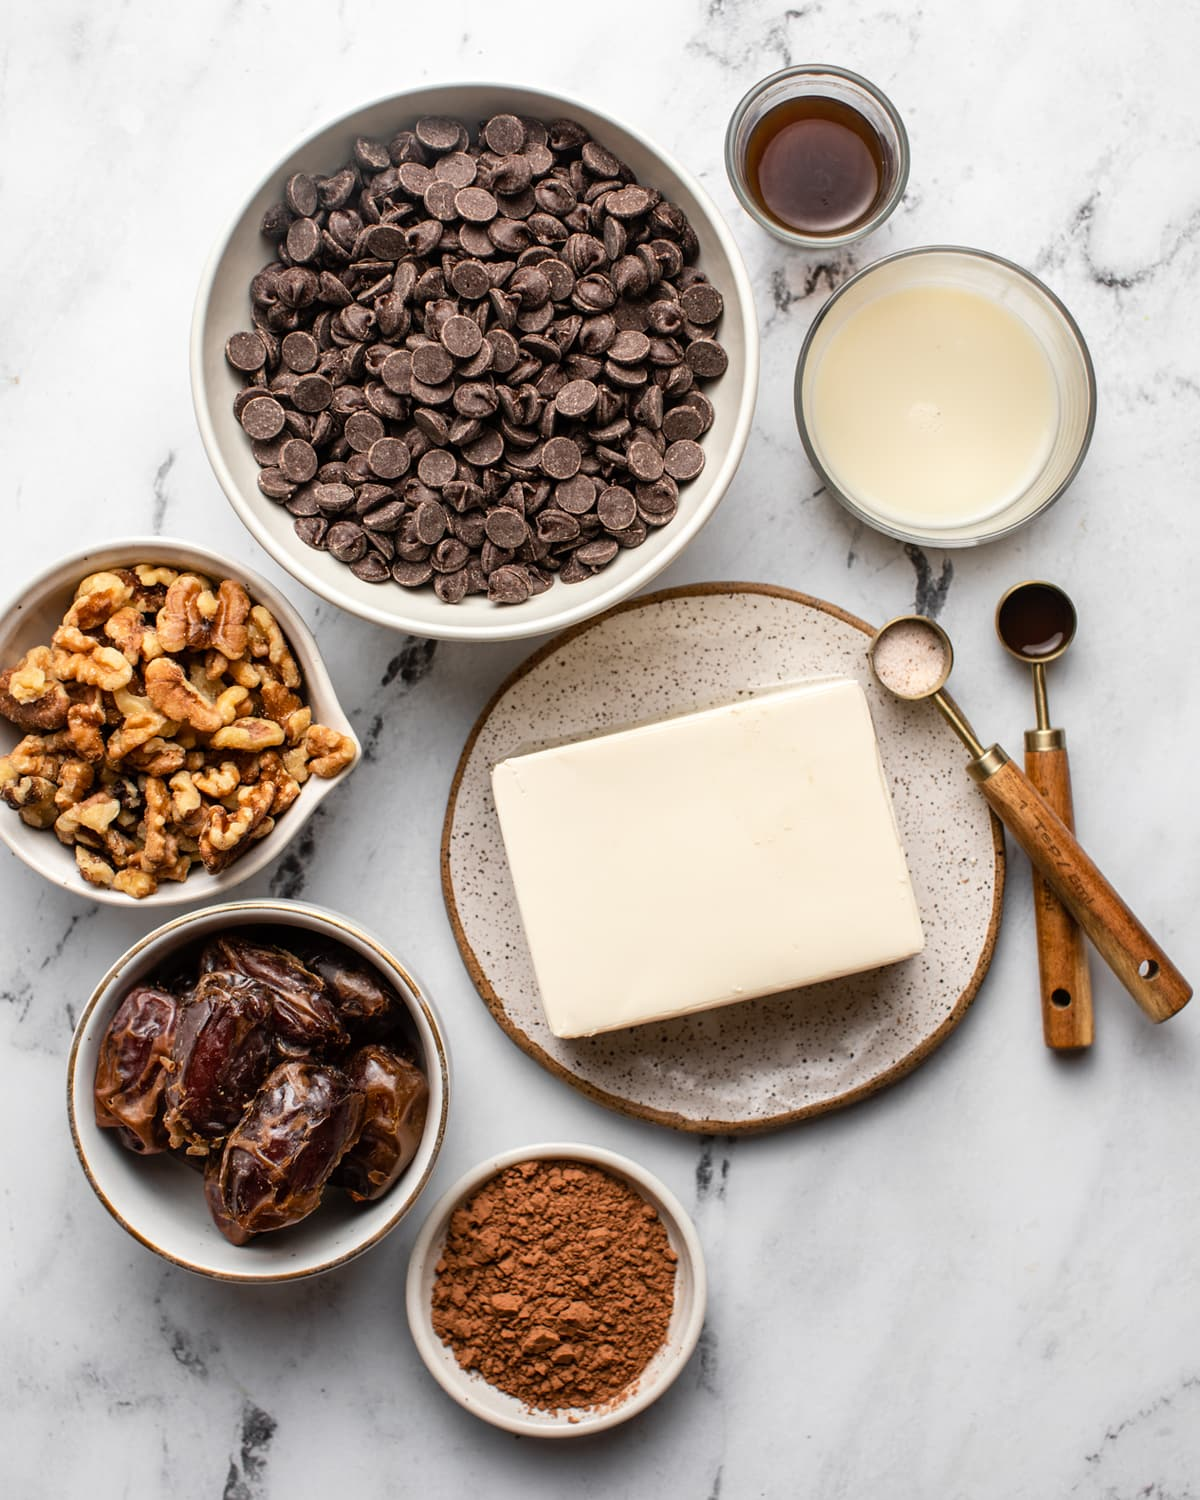 small bowls of chocolate chips, walnuts, dates, cacao powder, tofu, milk, coffee, vanilla, and salt on marble background